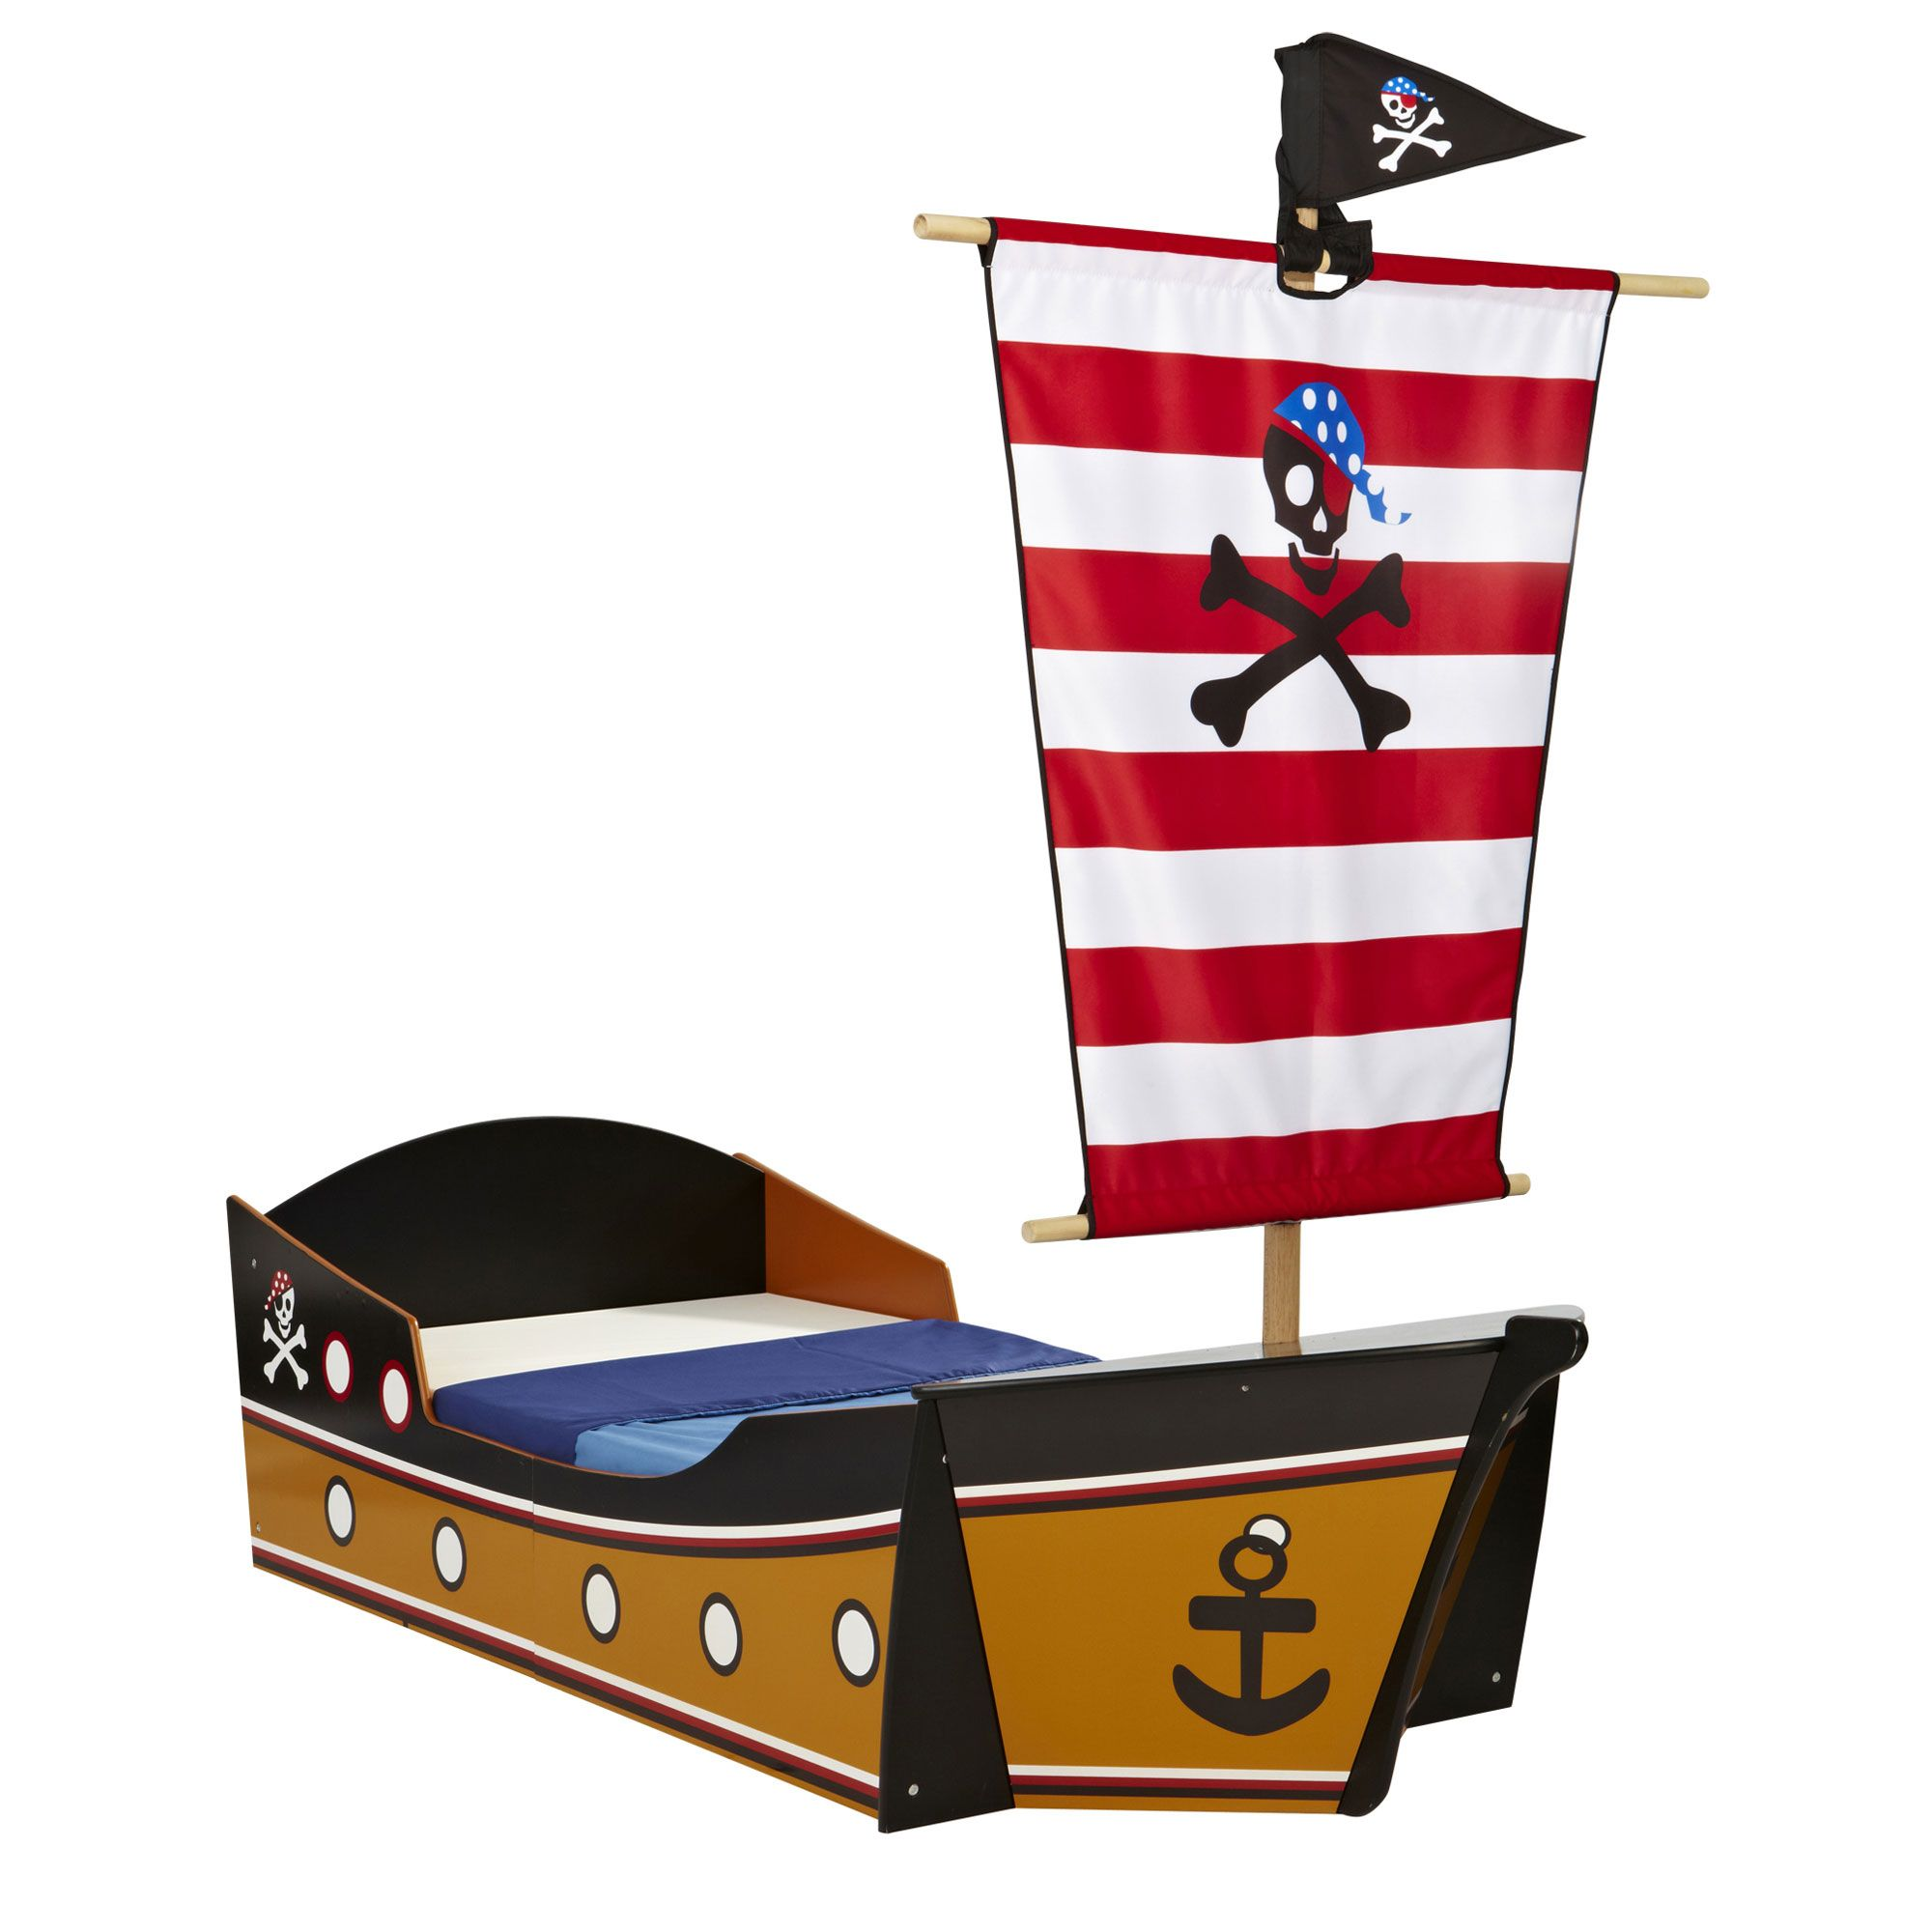 lit enfant en forme de bateau de pirate couchage 70x140 cm. Black Bedroom Furniture Sets. Home Design Ideas